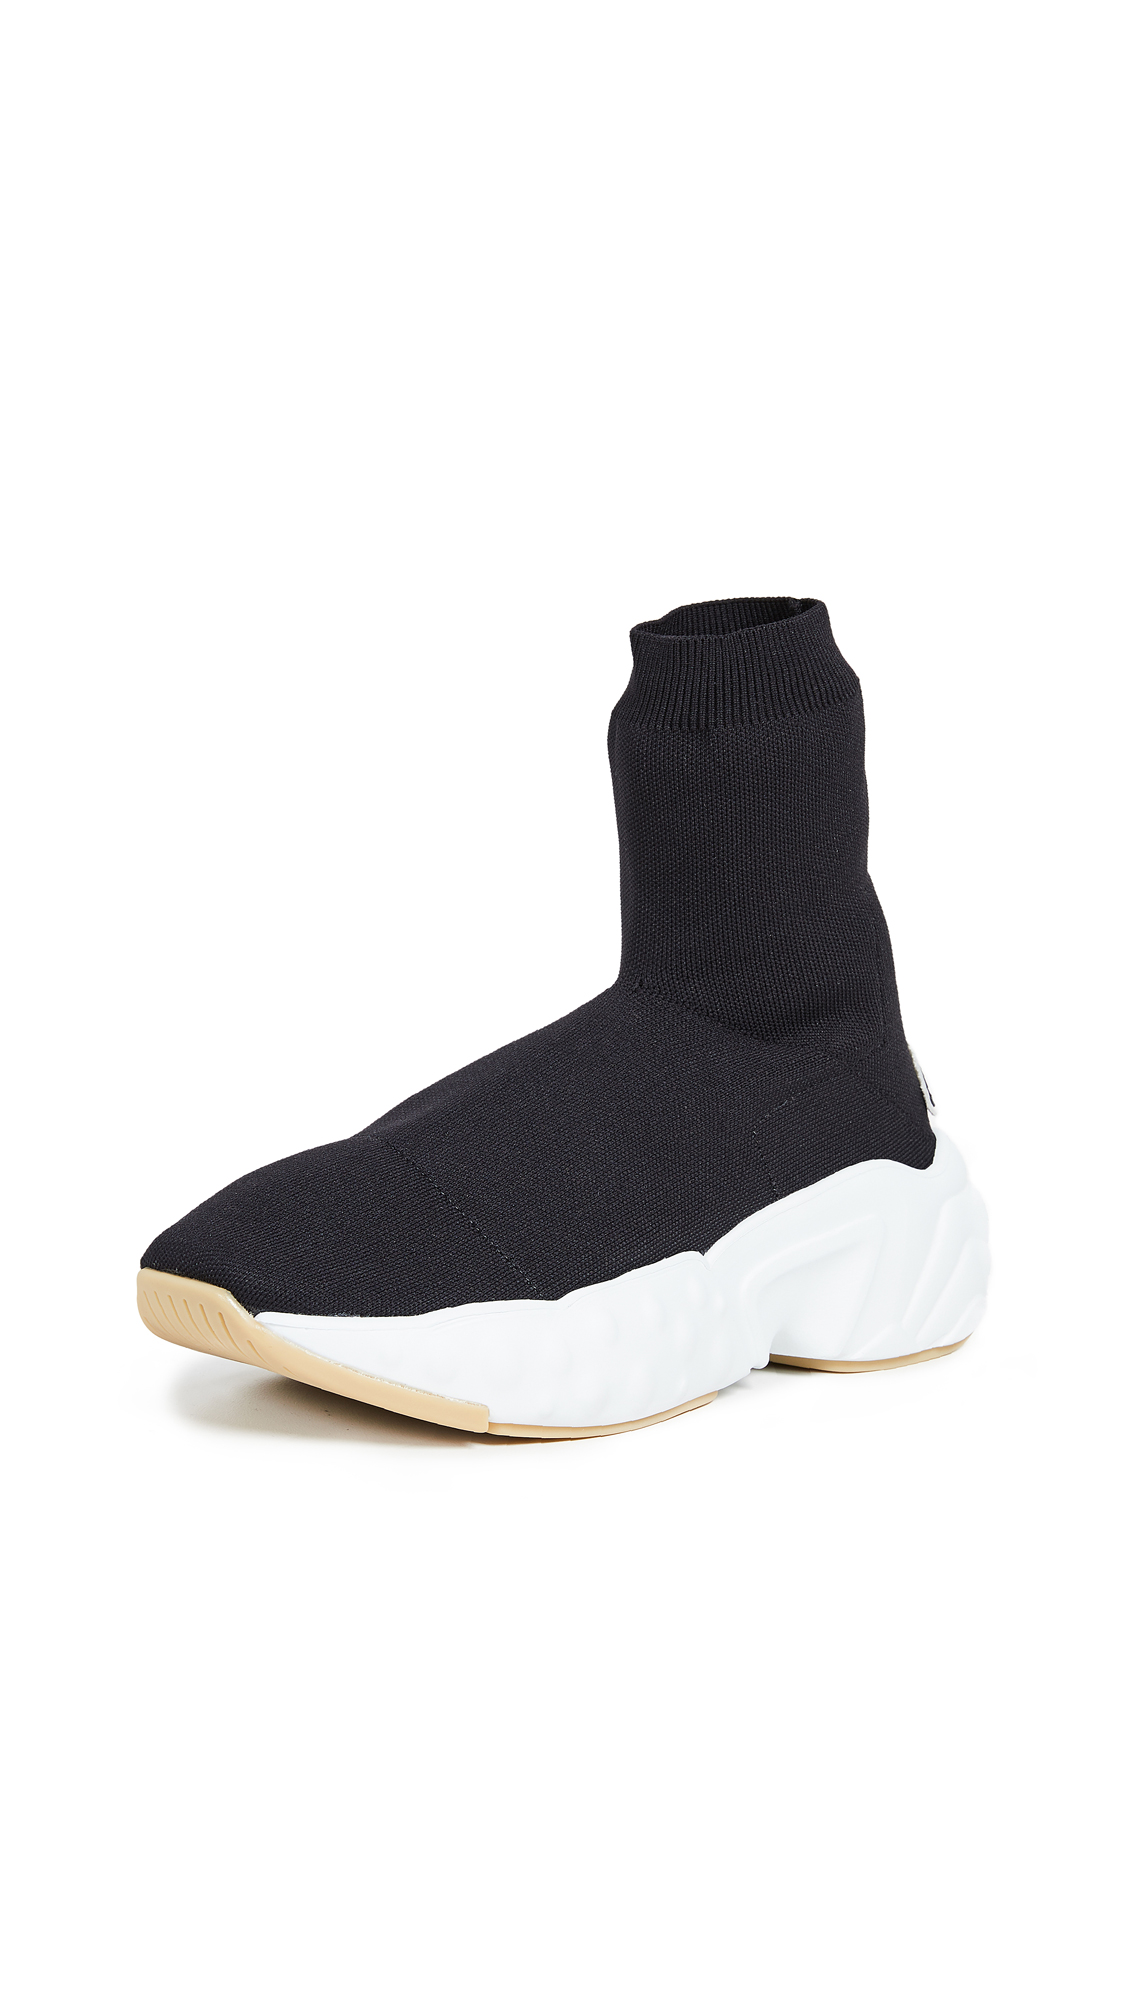 Acne Studios Tall Sock Sneakers - Black/Black